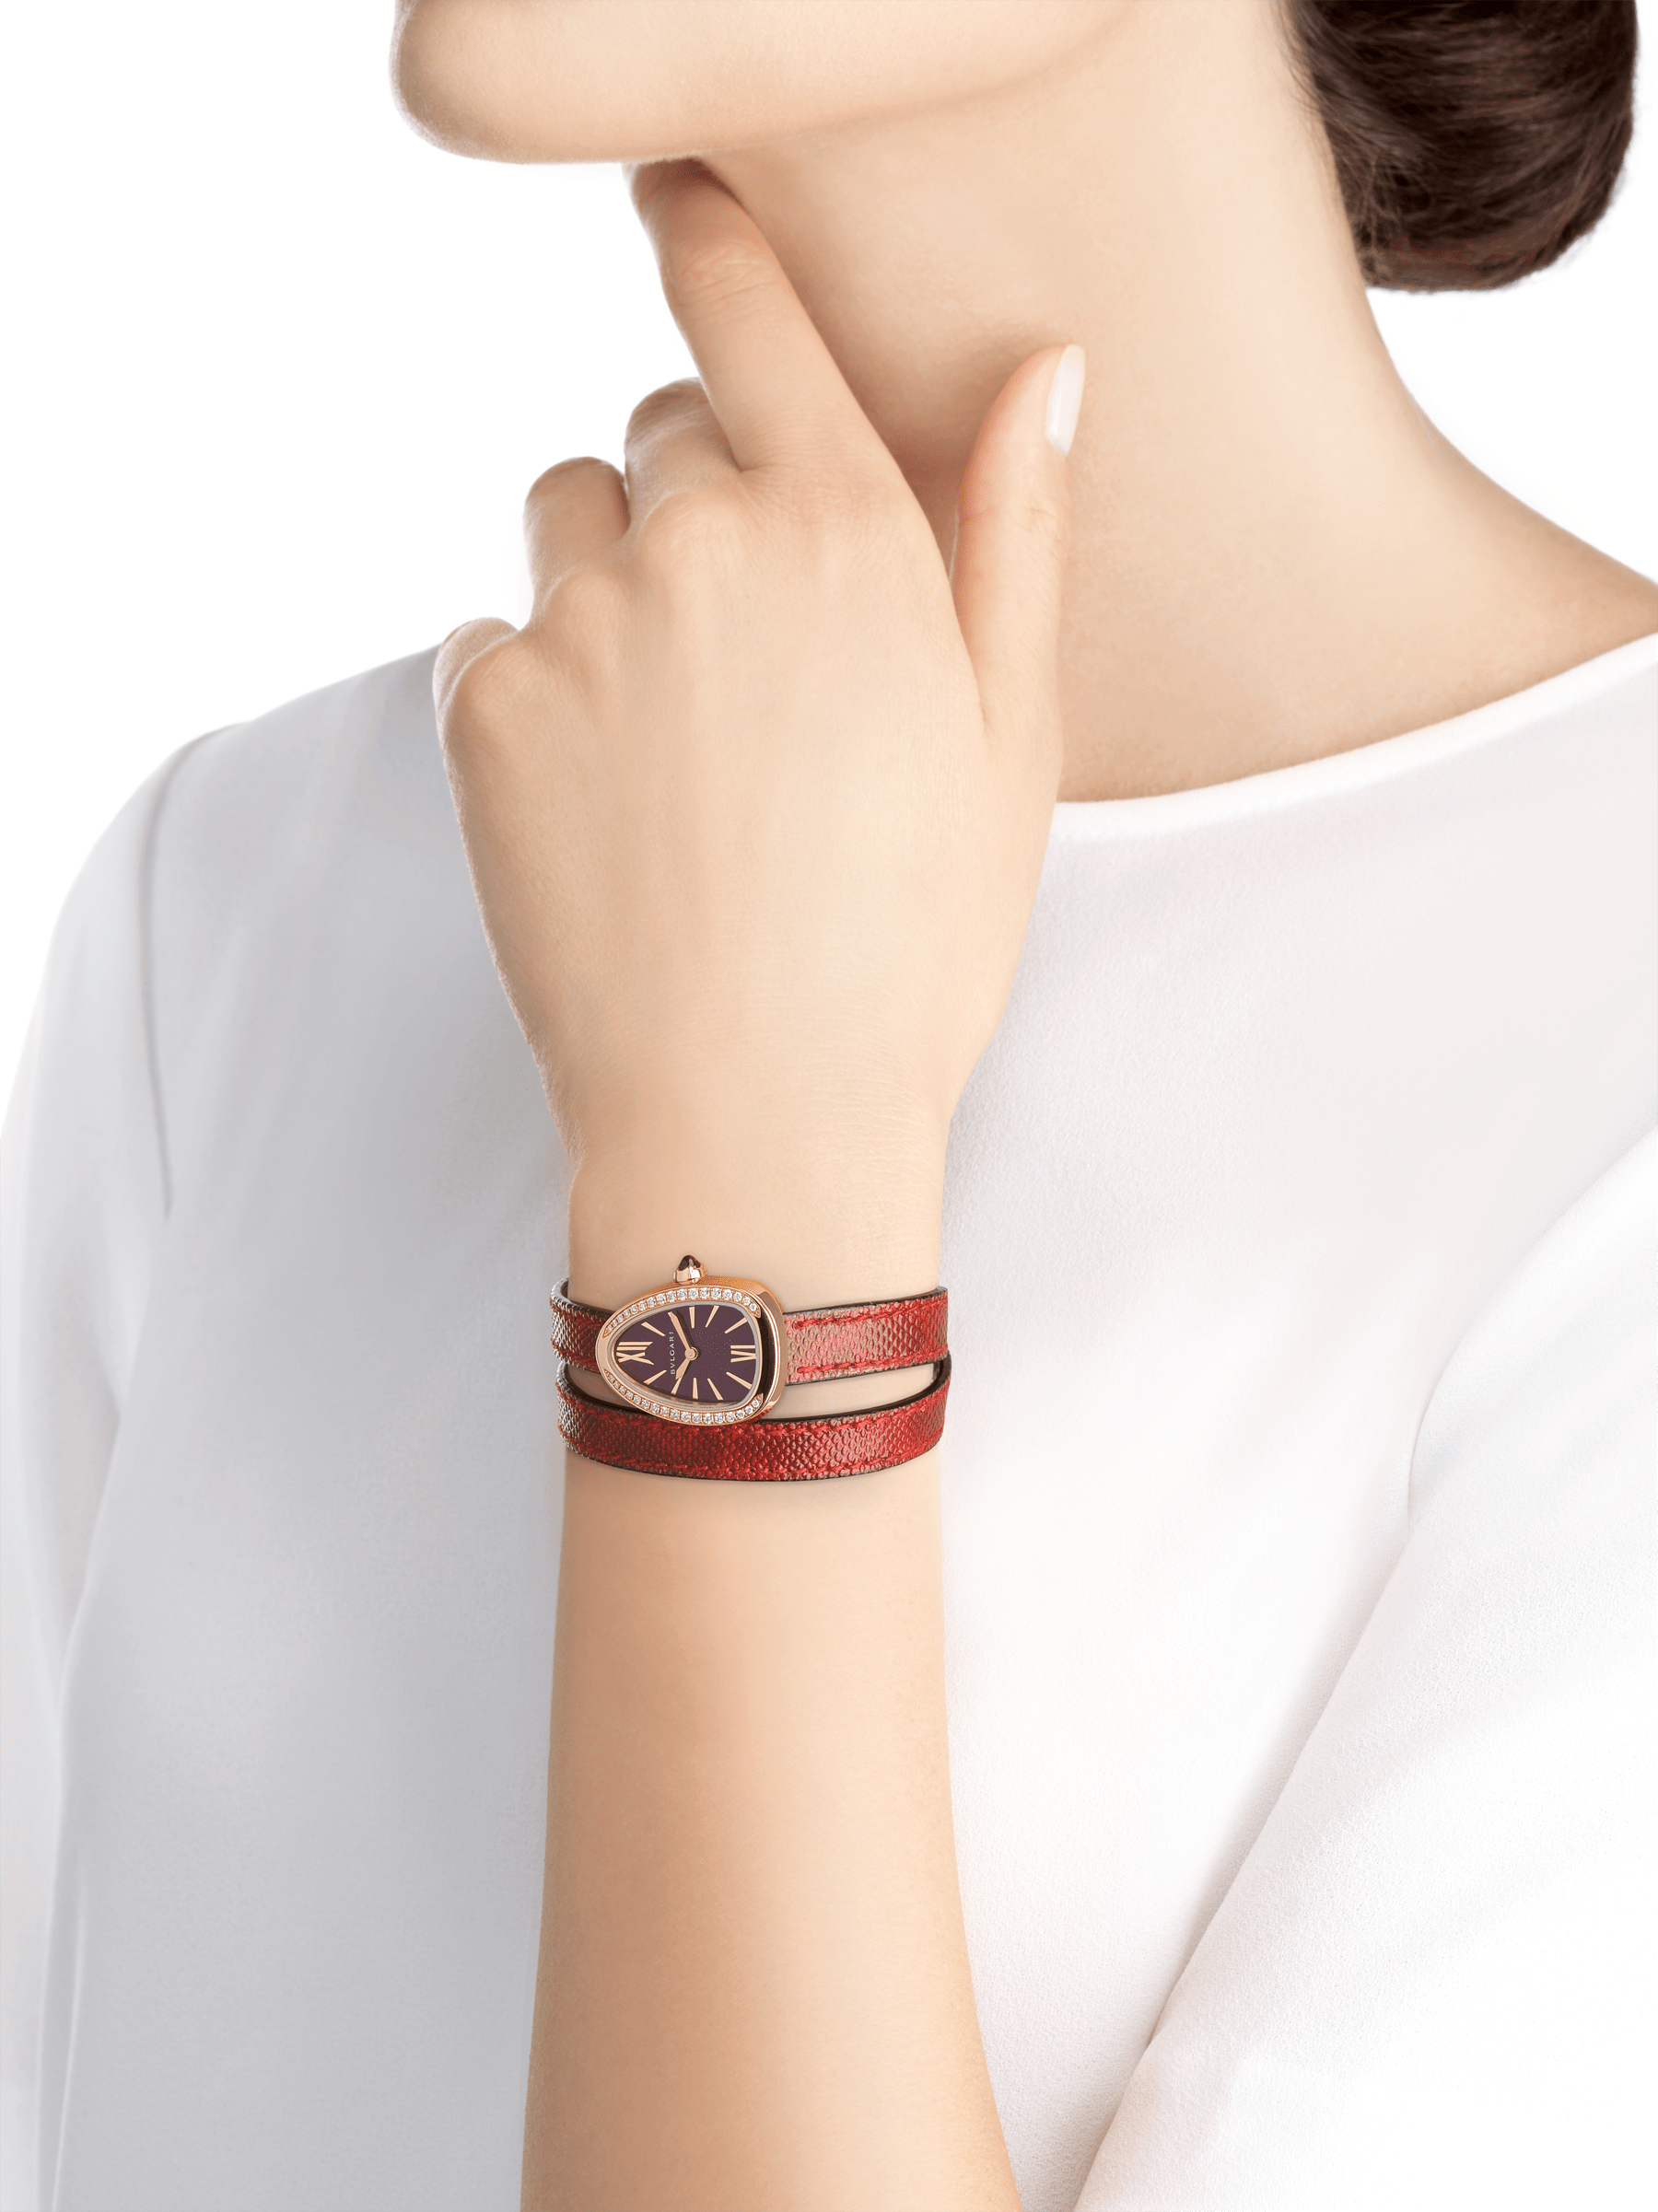 Serpenti watch with 18 kt rose gold case set with brilliant cut diamonds, red lacquered dial and interchangeable double spiral bracelet in red karung leather. 102730 image 4